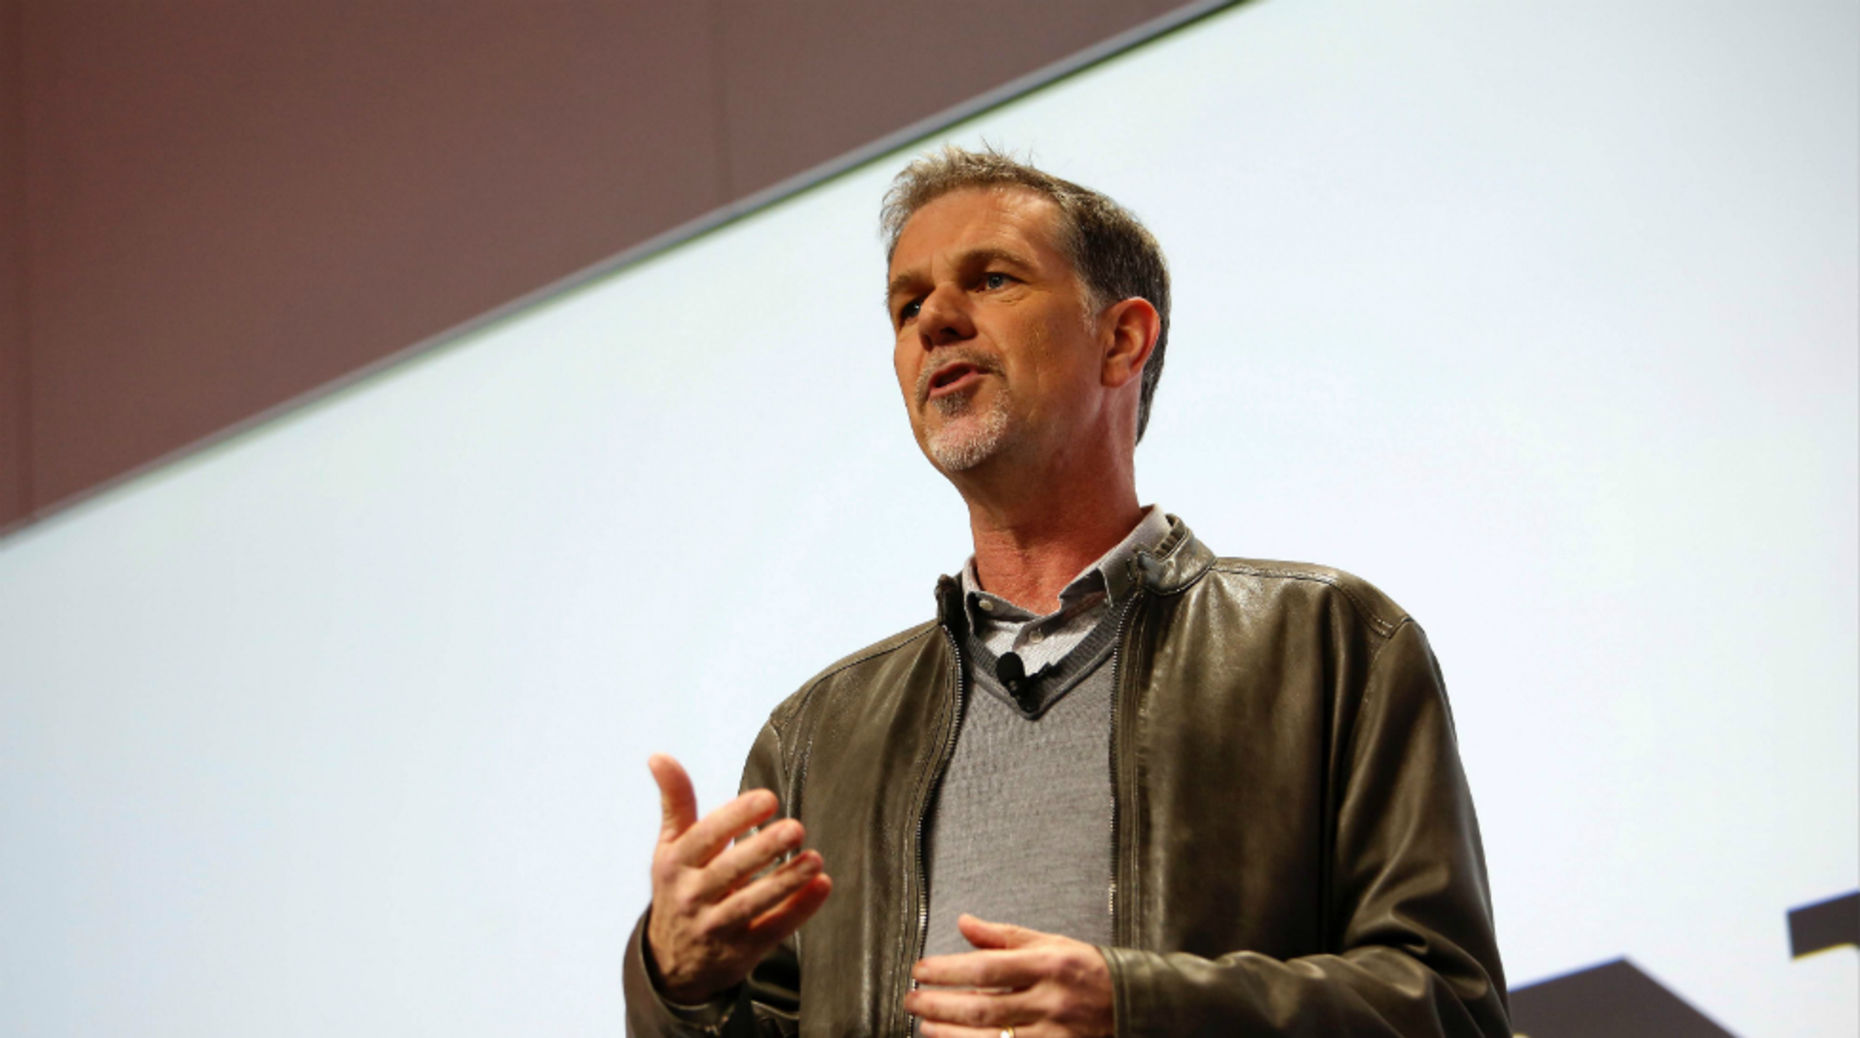 Netflix CEO Reed Hastings. Photo by Bloomberg.